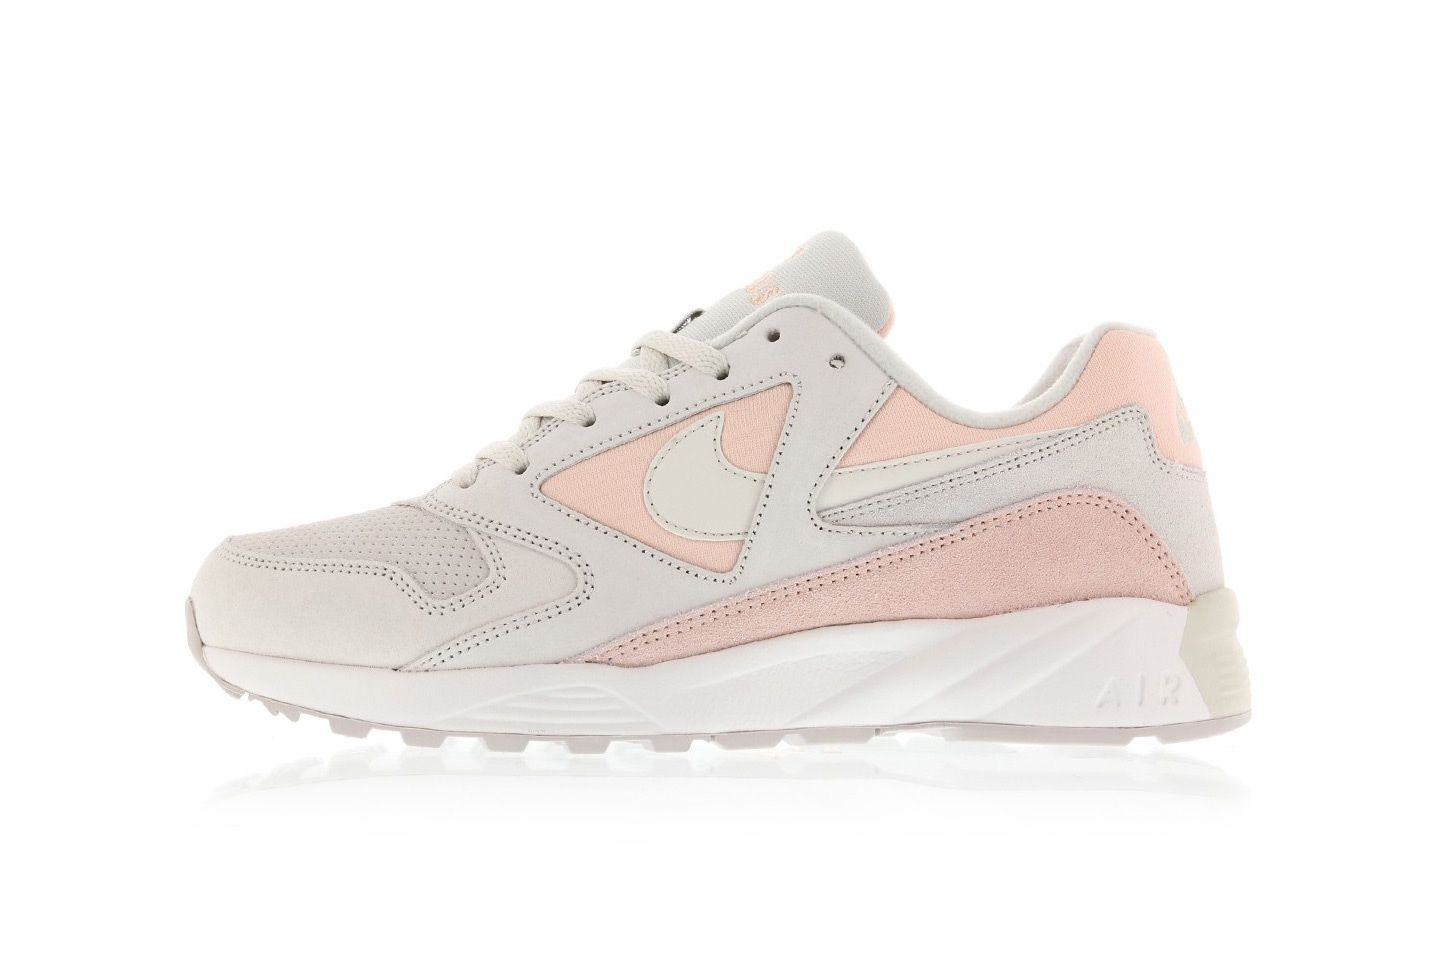 nike shoes online shop philippines multiply fractions 923096